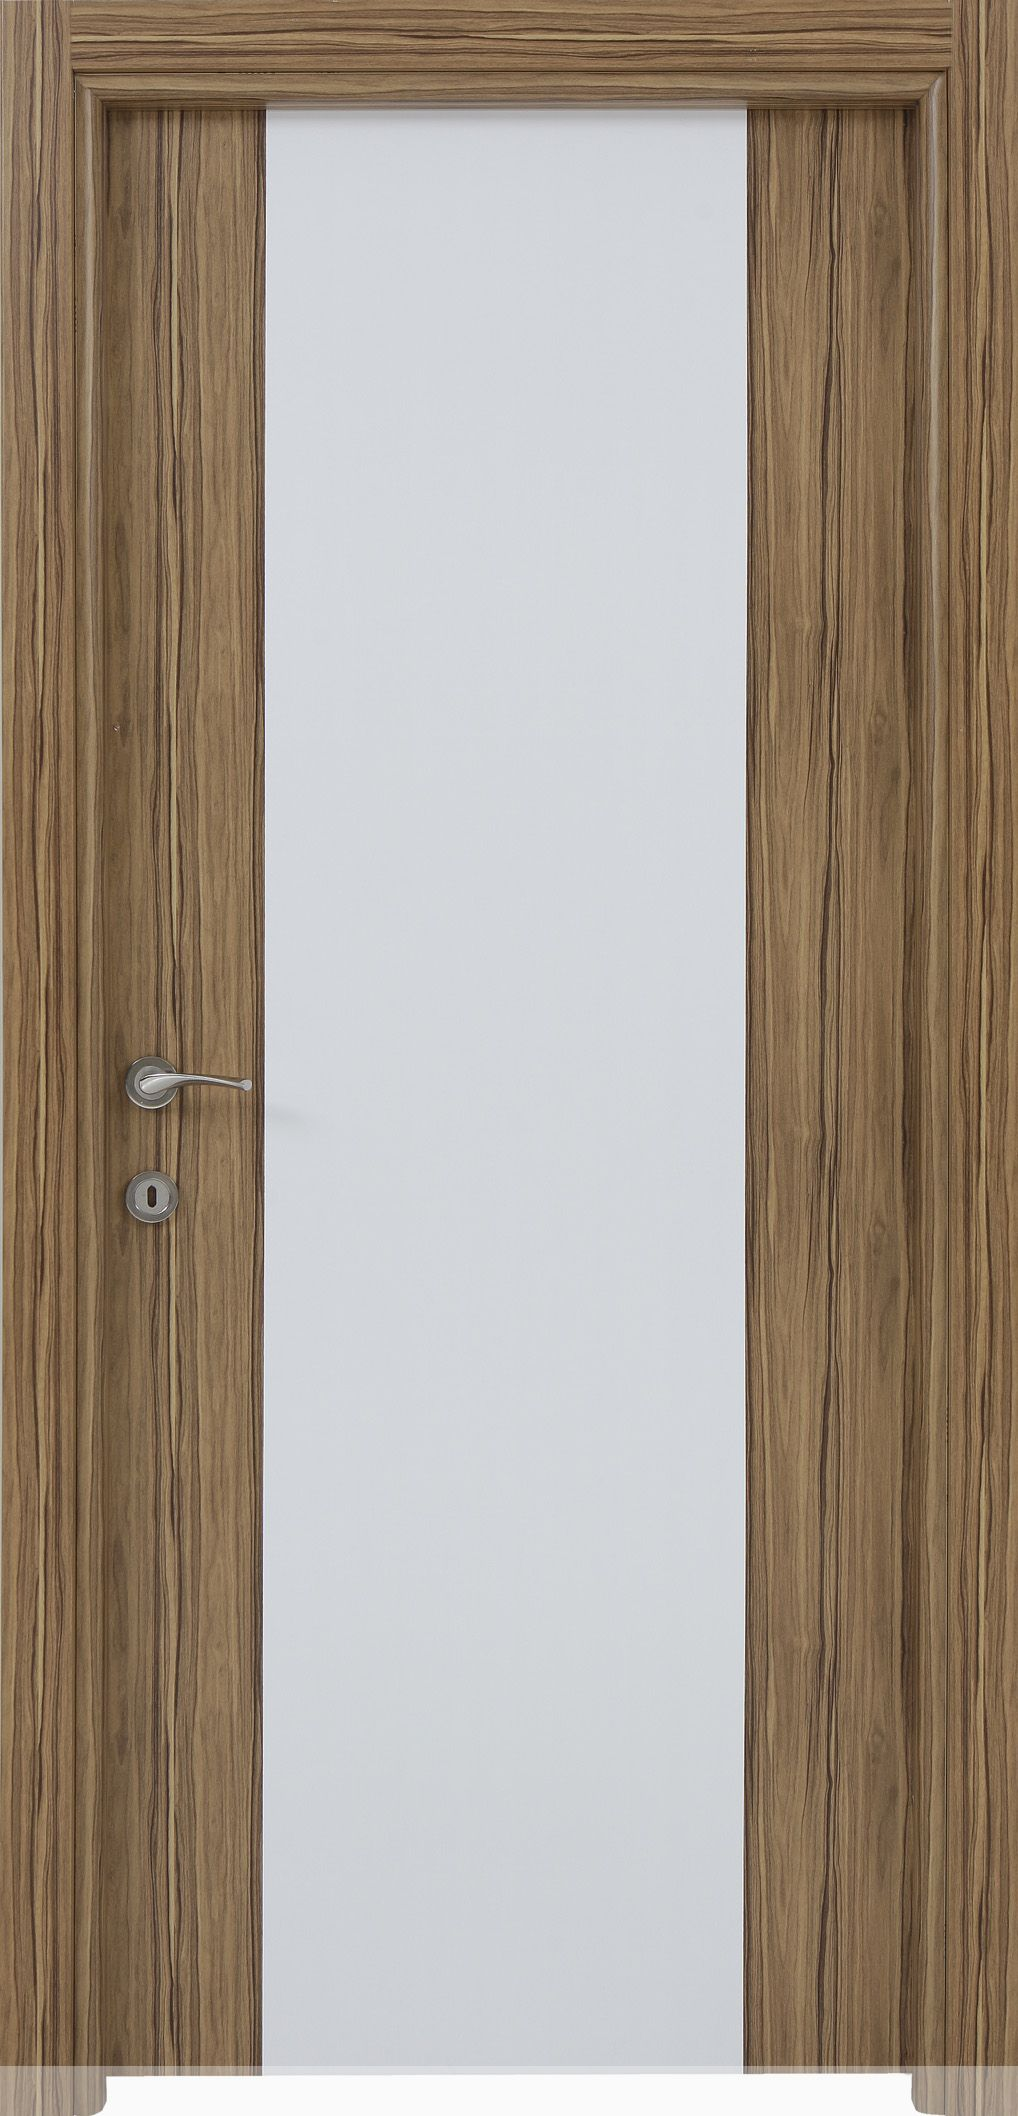 Turkish Pvc Composite Interior Doors